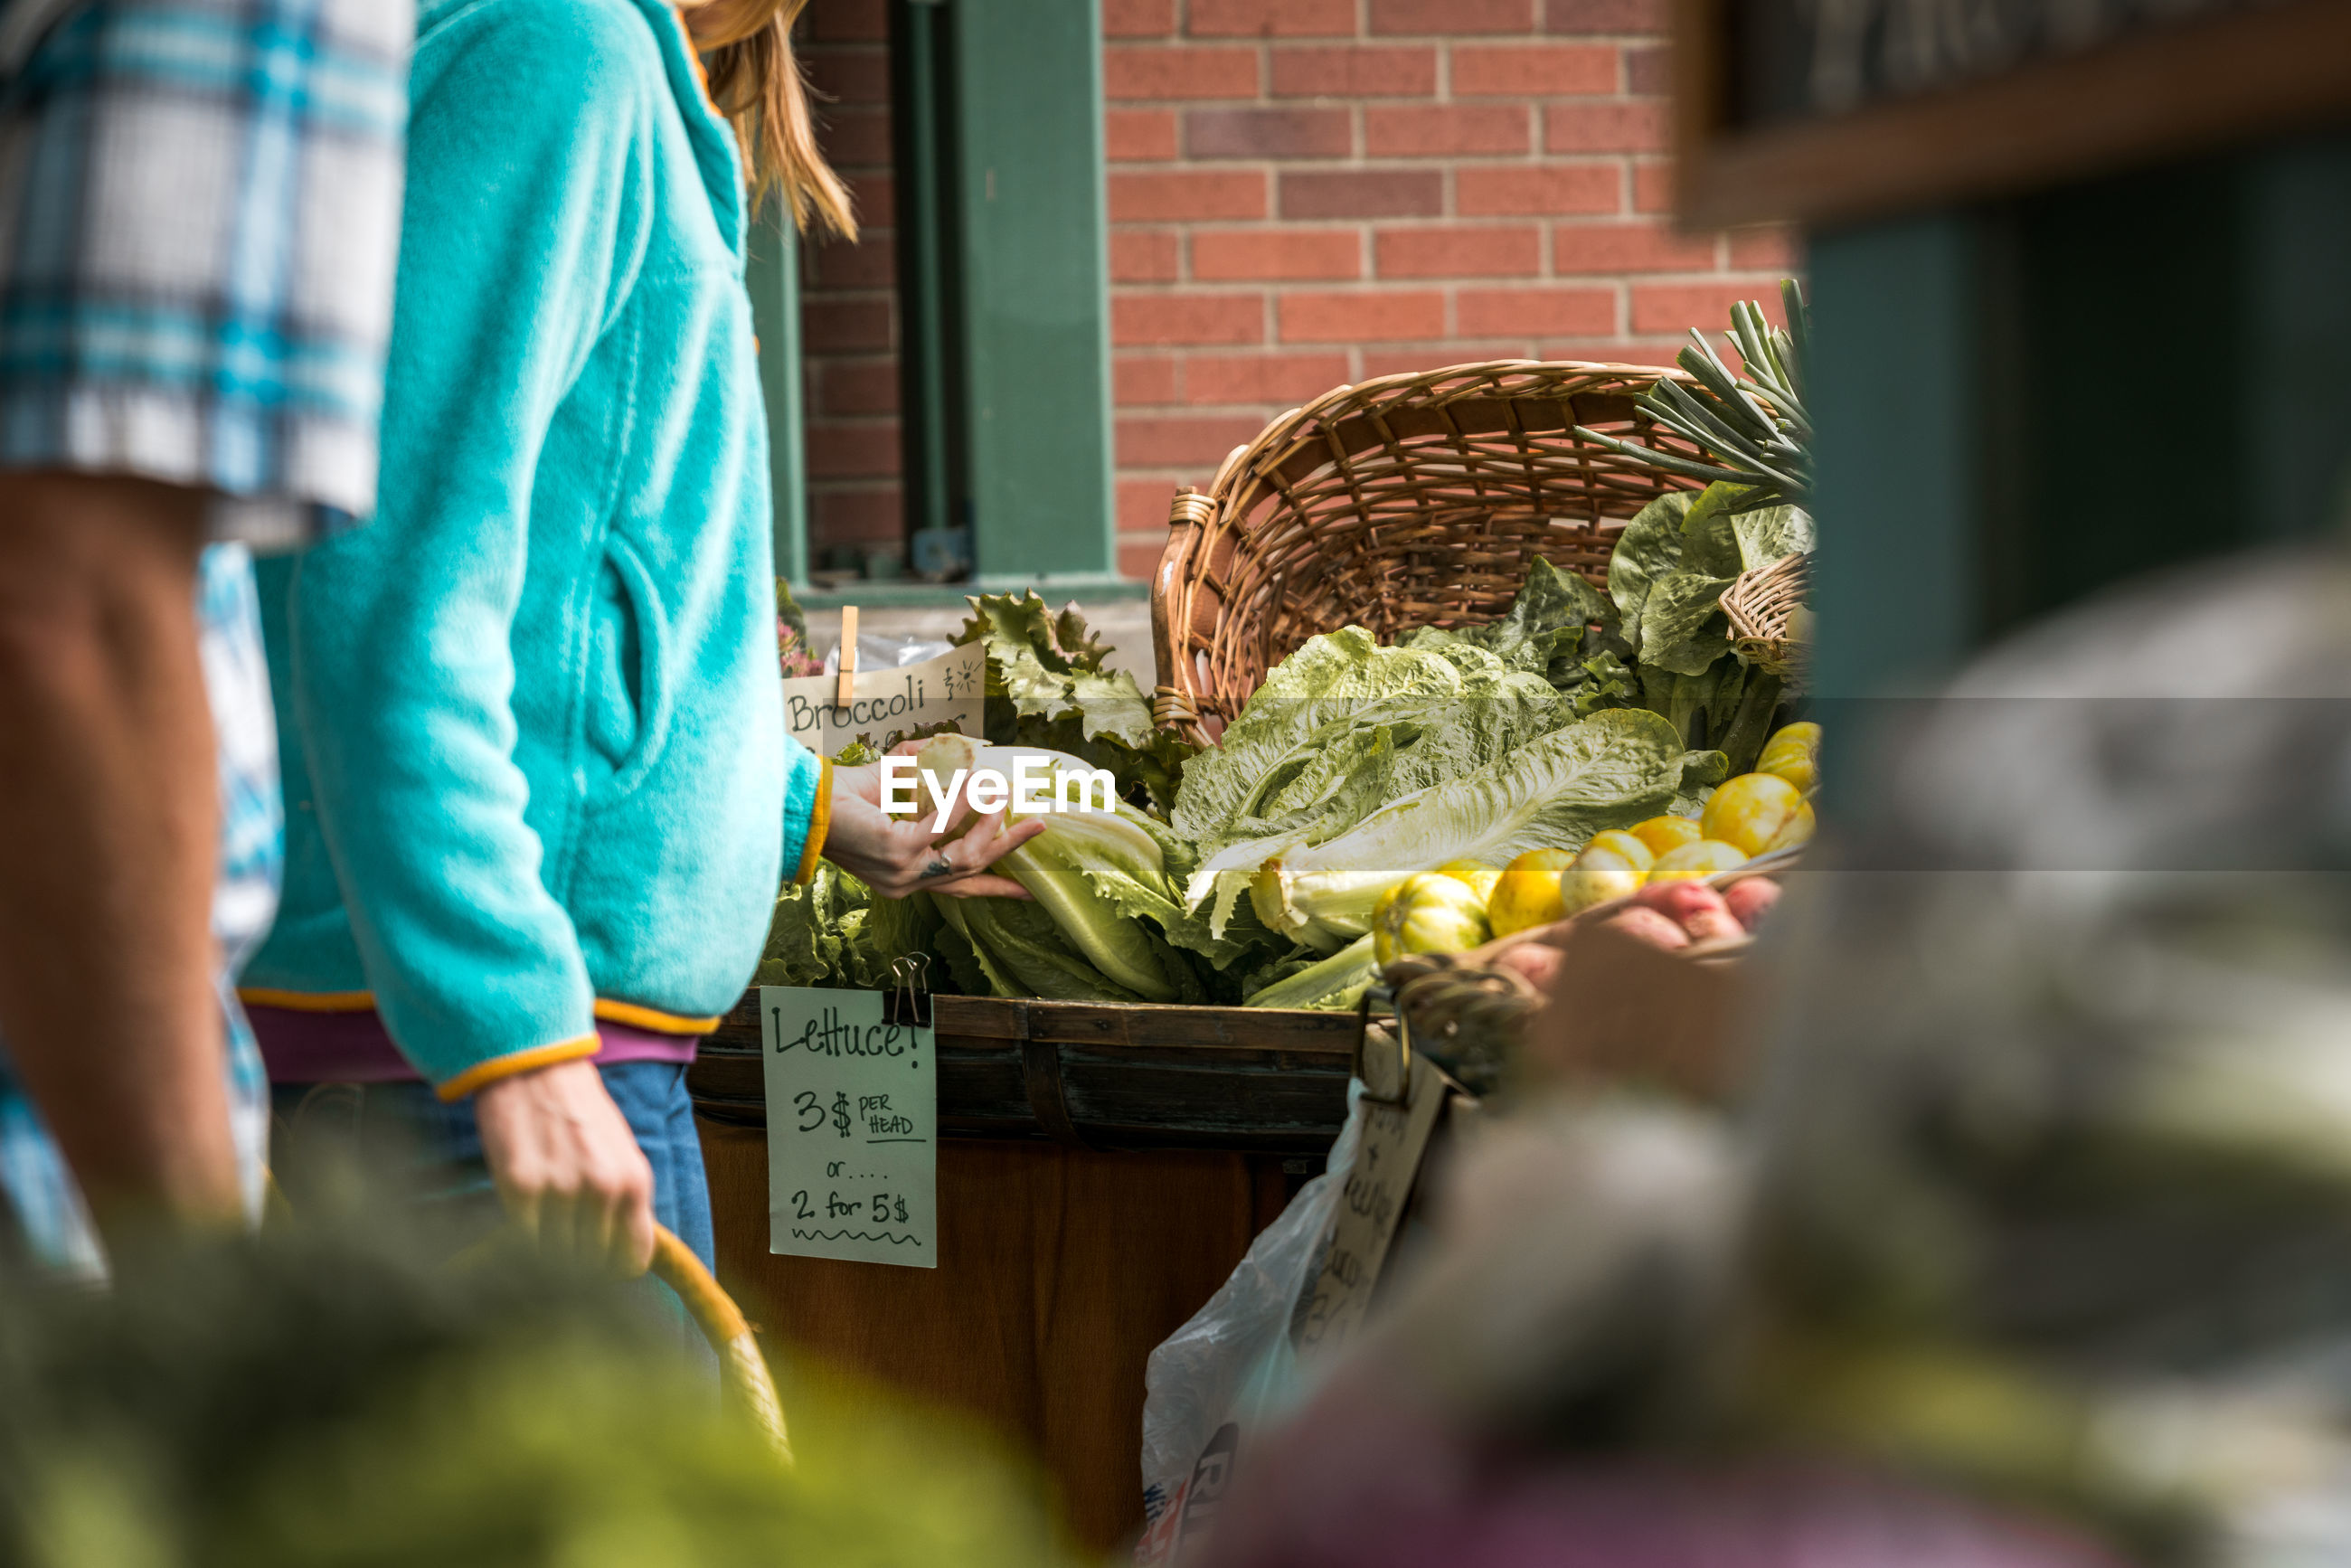 MIDSECTION OF WOMAN STANDING BY MARKET